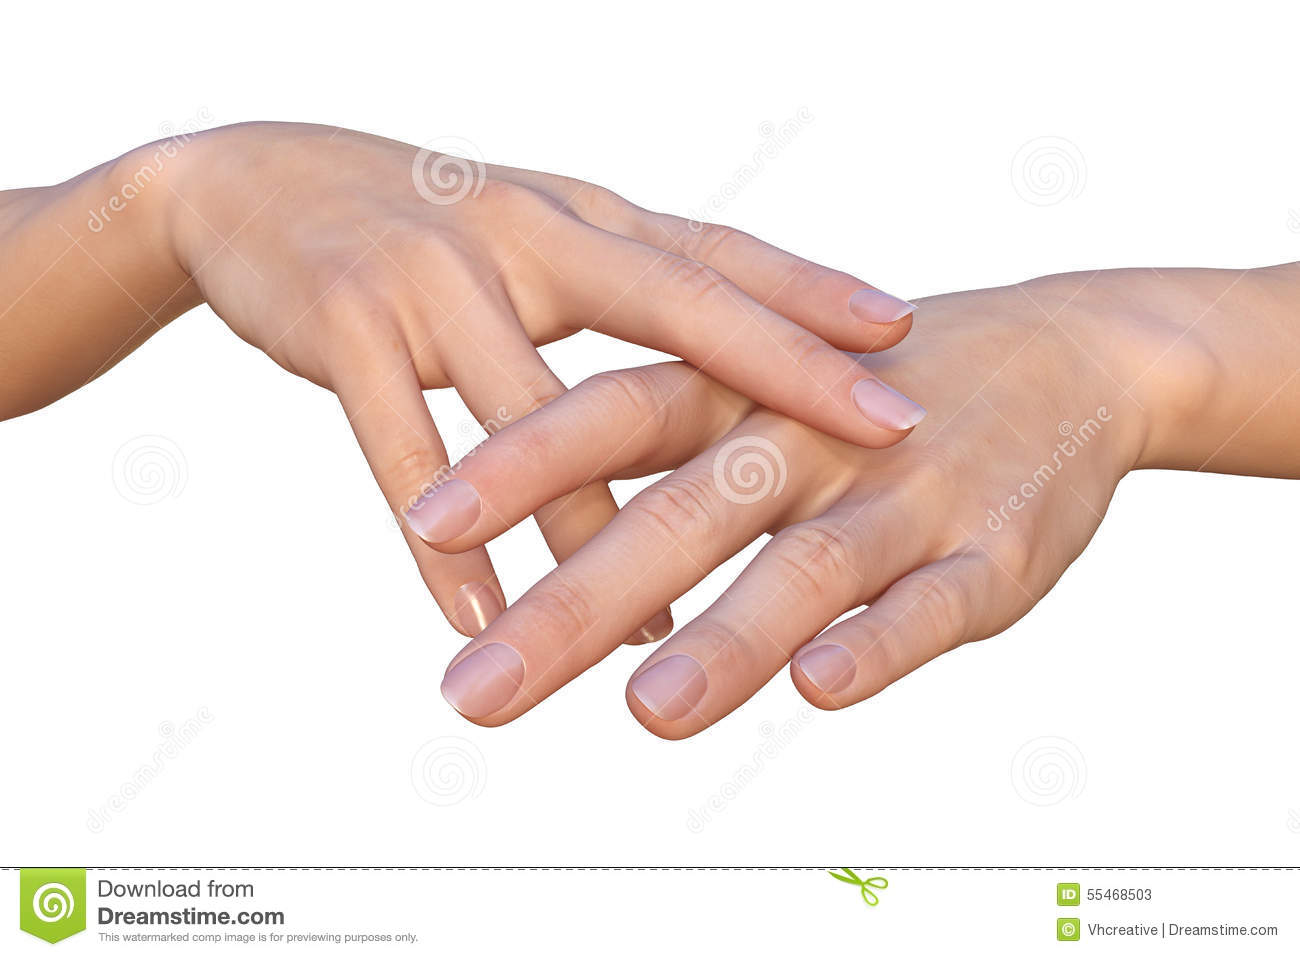 Female hands with crossed fingers are touching